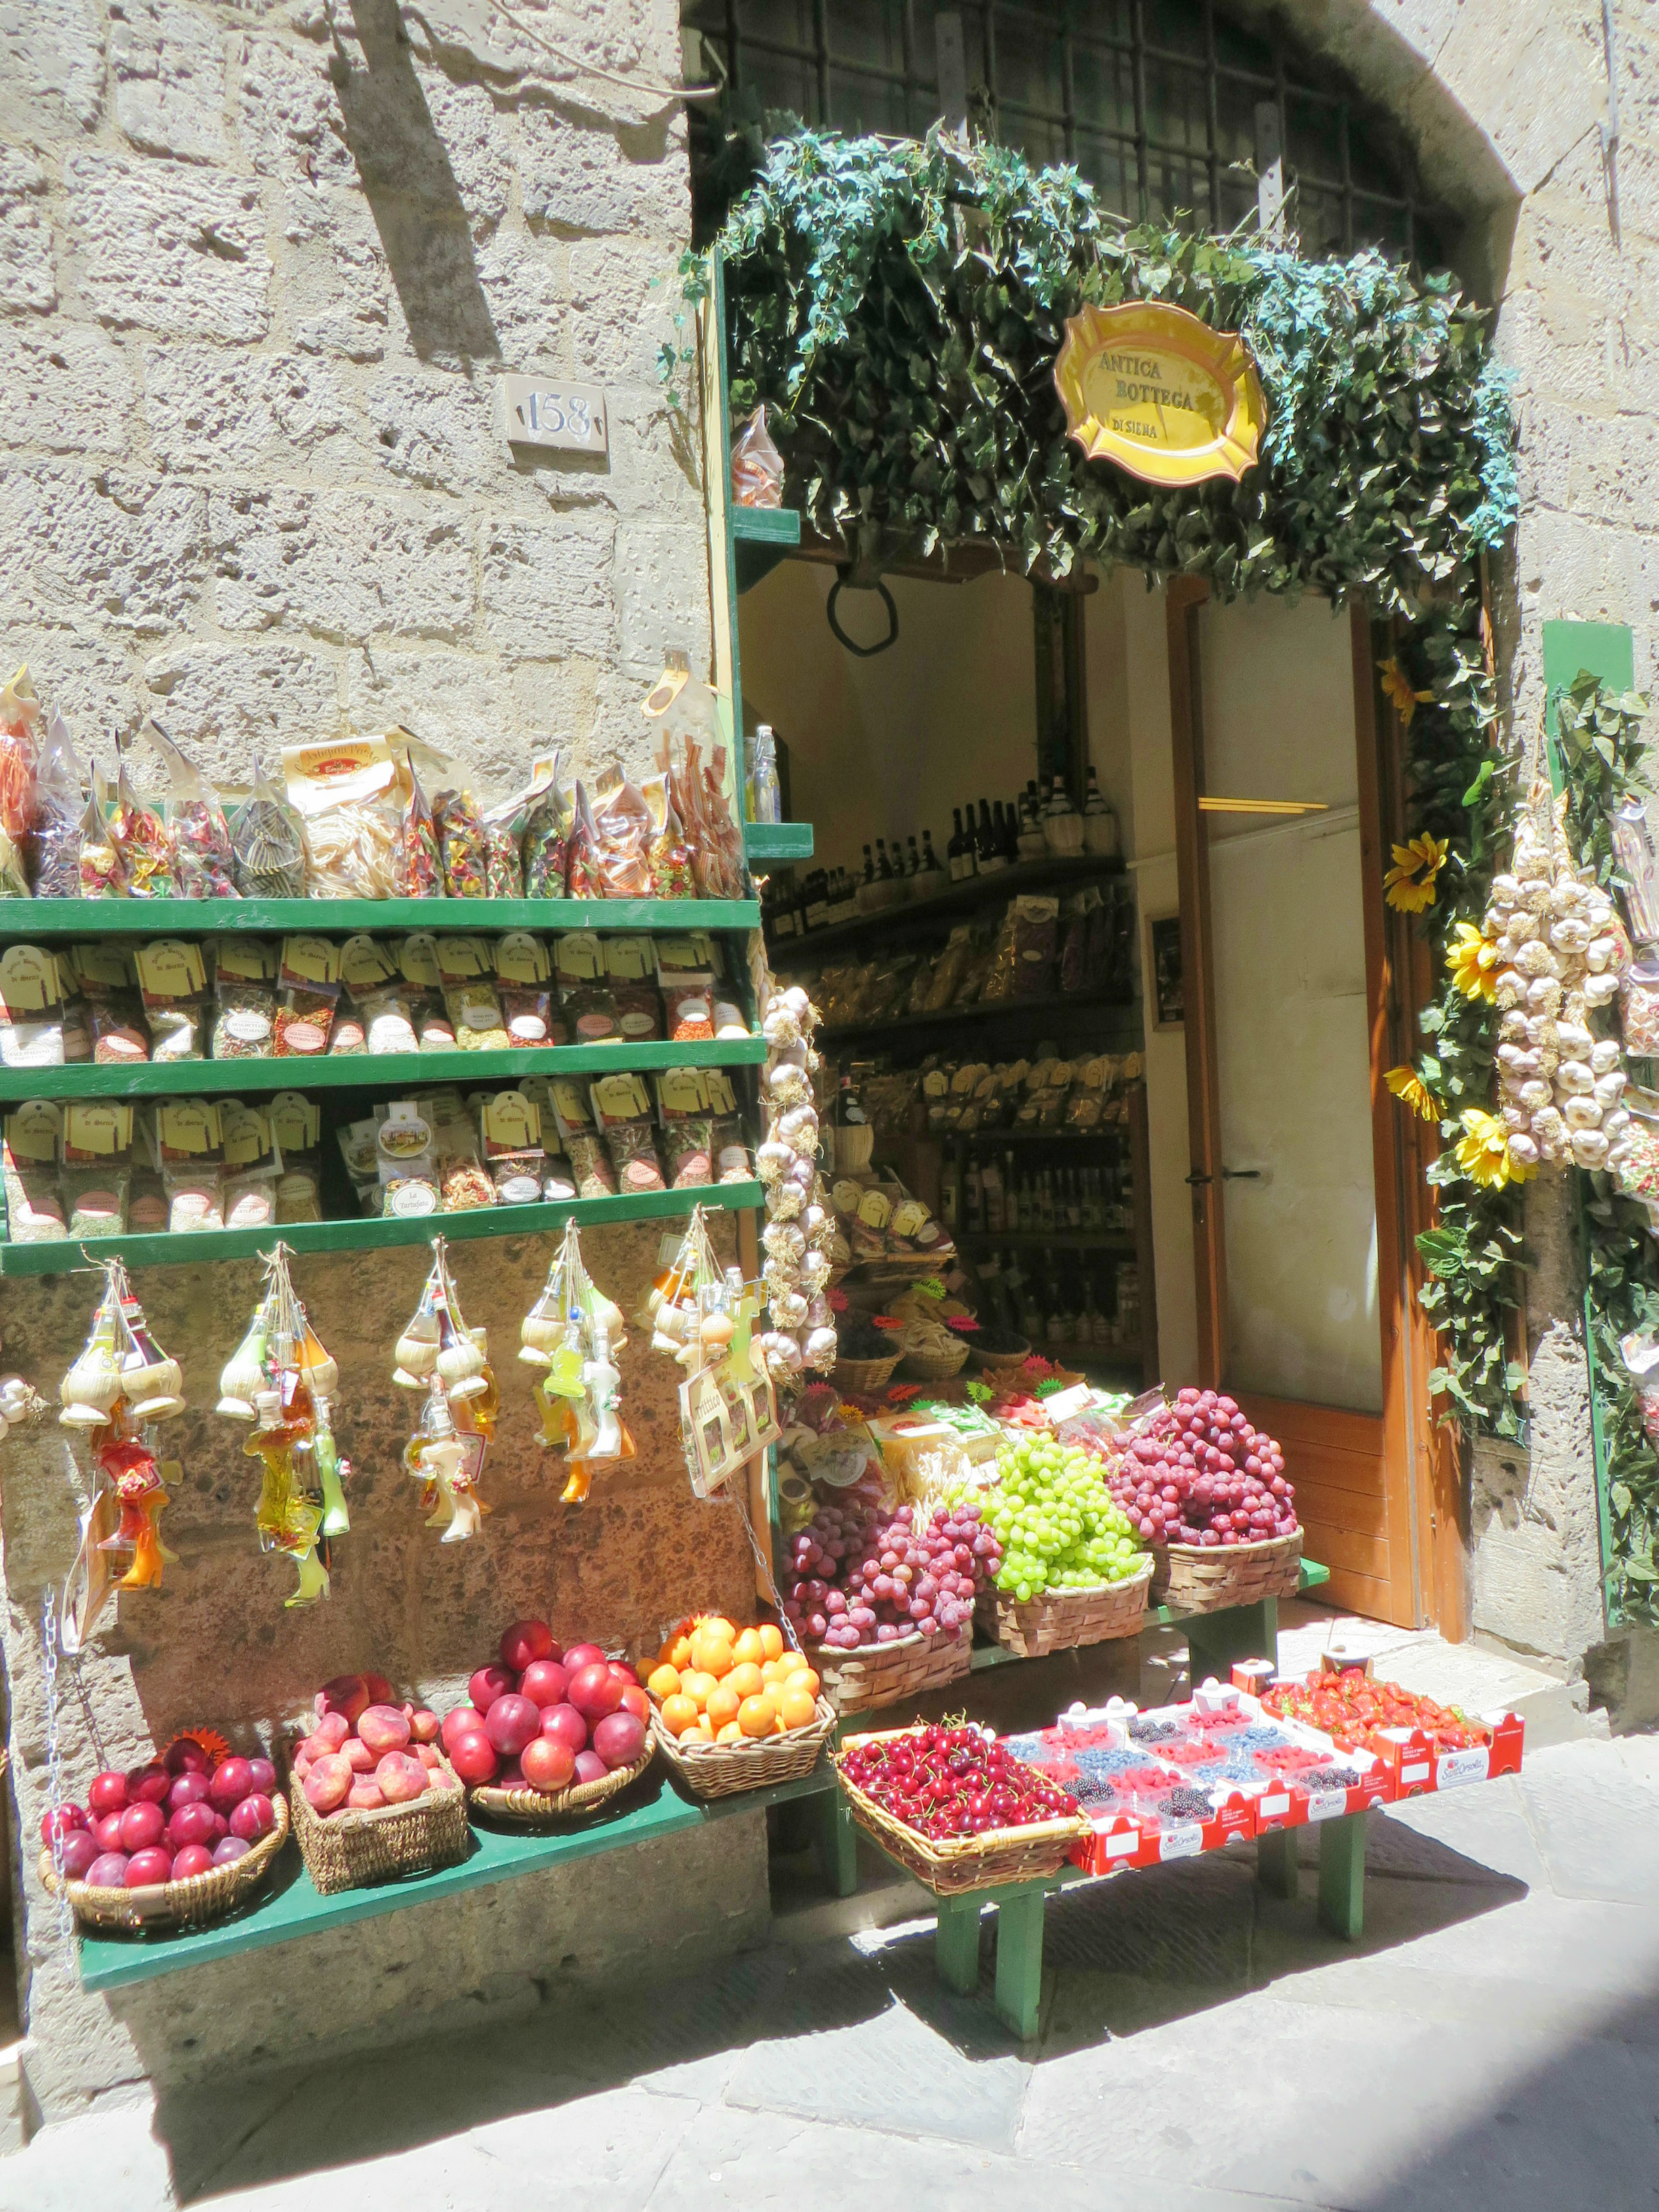 A simple market in Siena